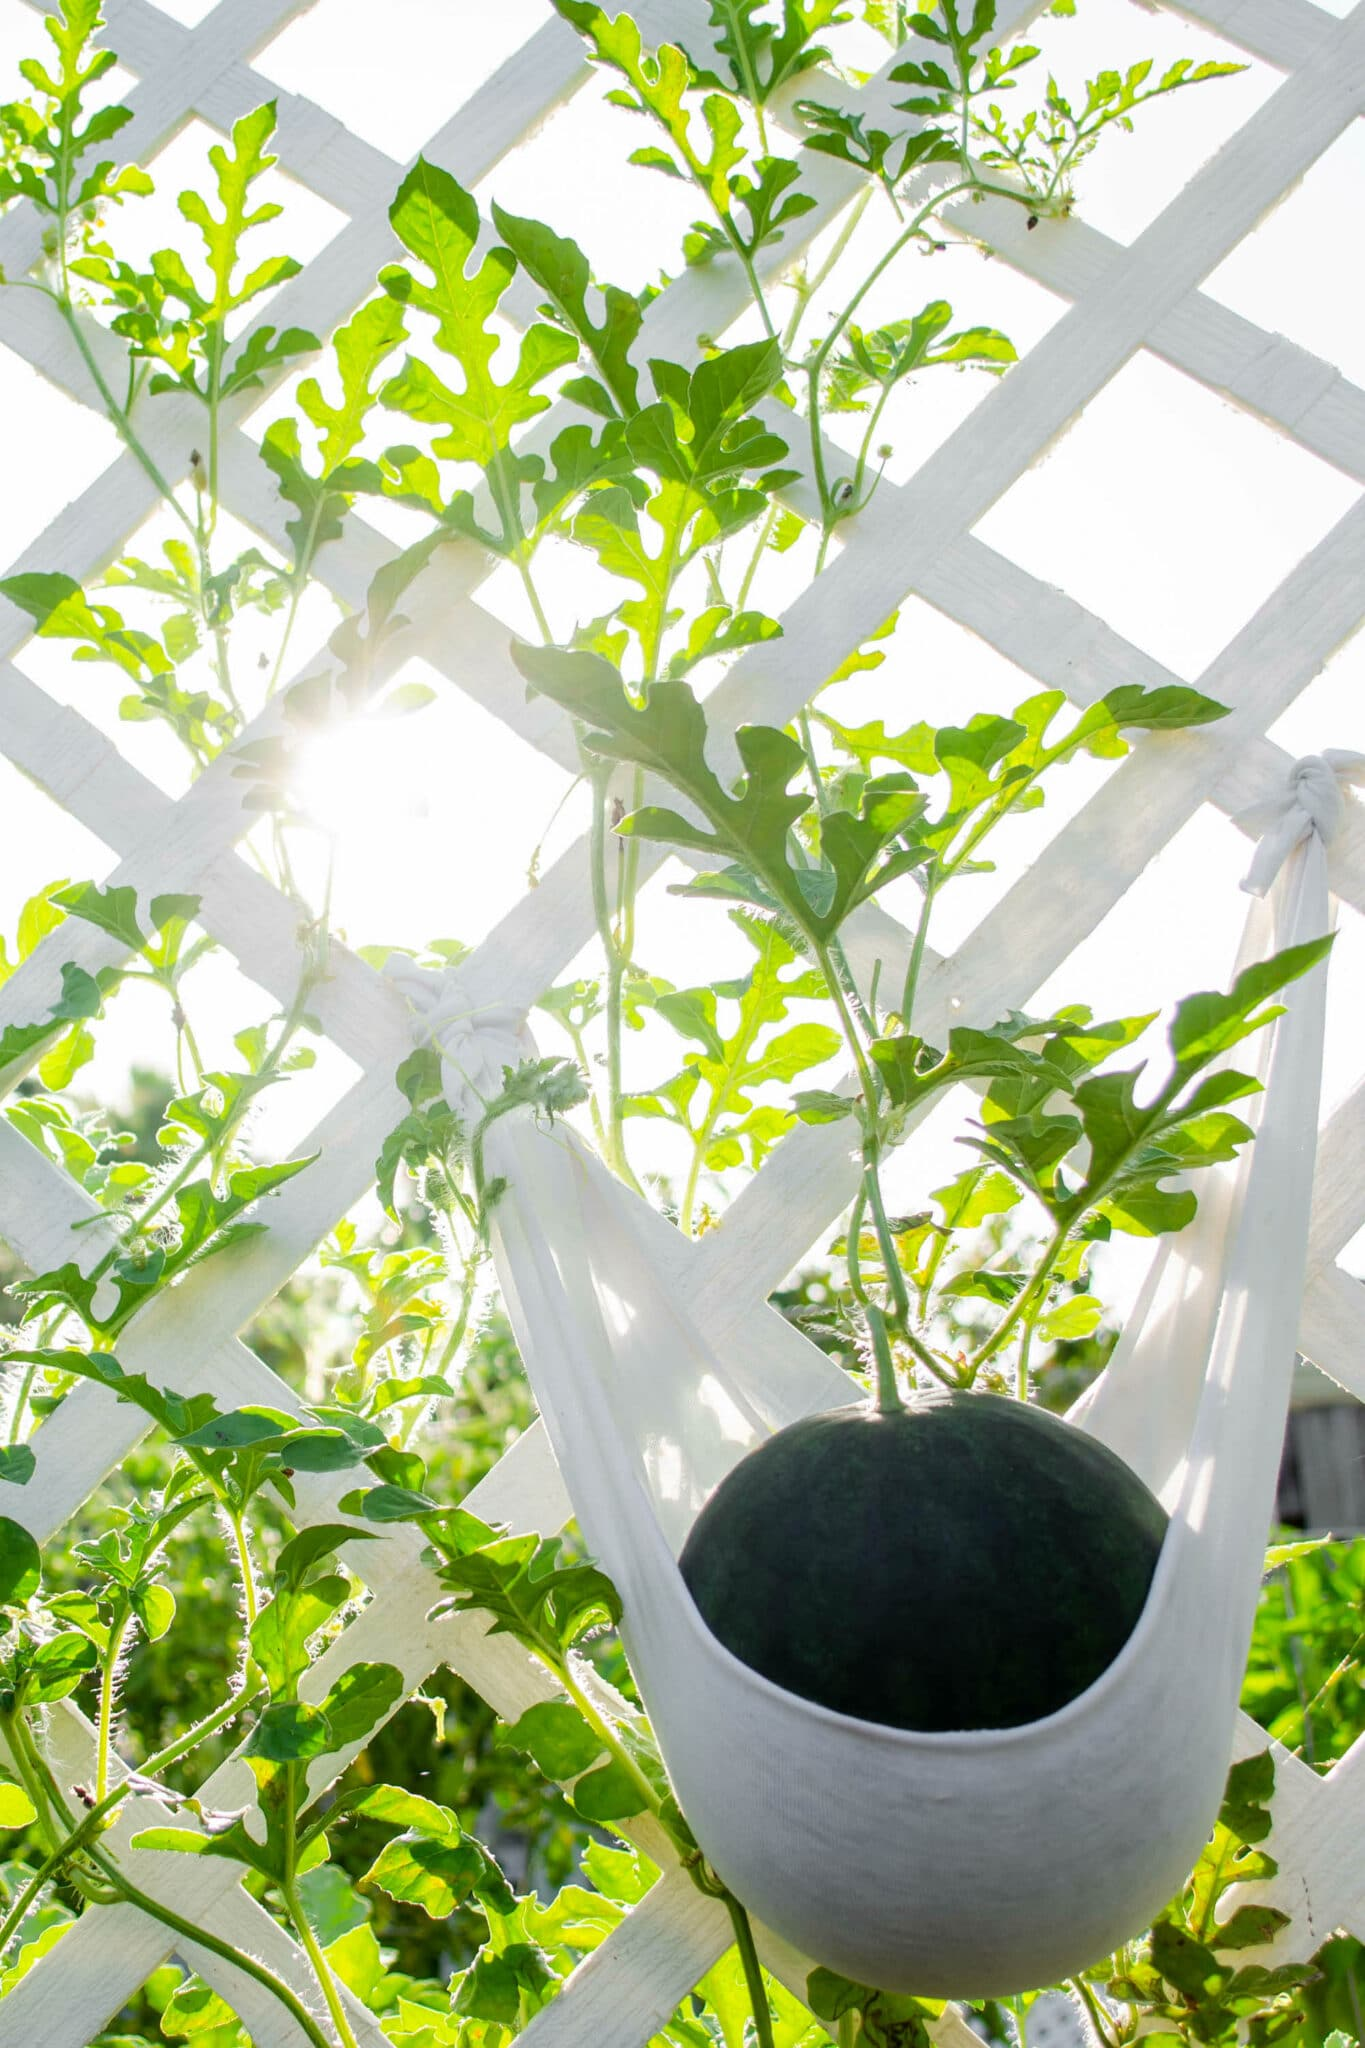 A melon growing on a vine on a trellis, supported by a piece of cloth. This shows how a trellis is a great garden idea for small spaces.